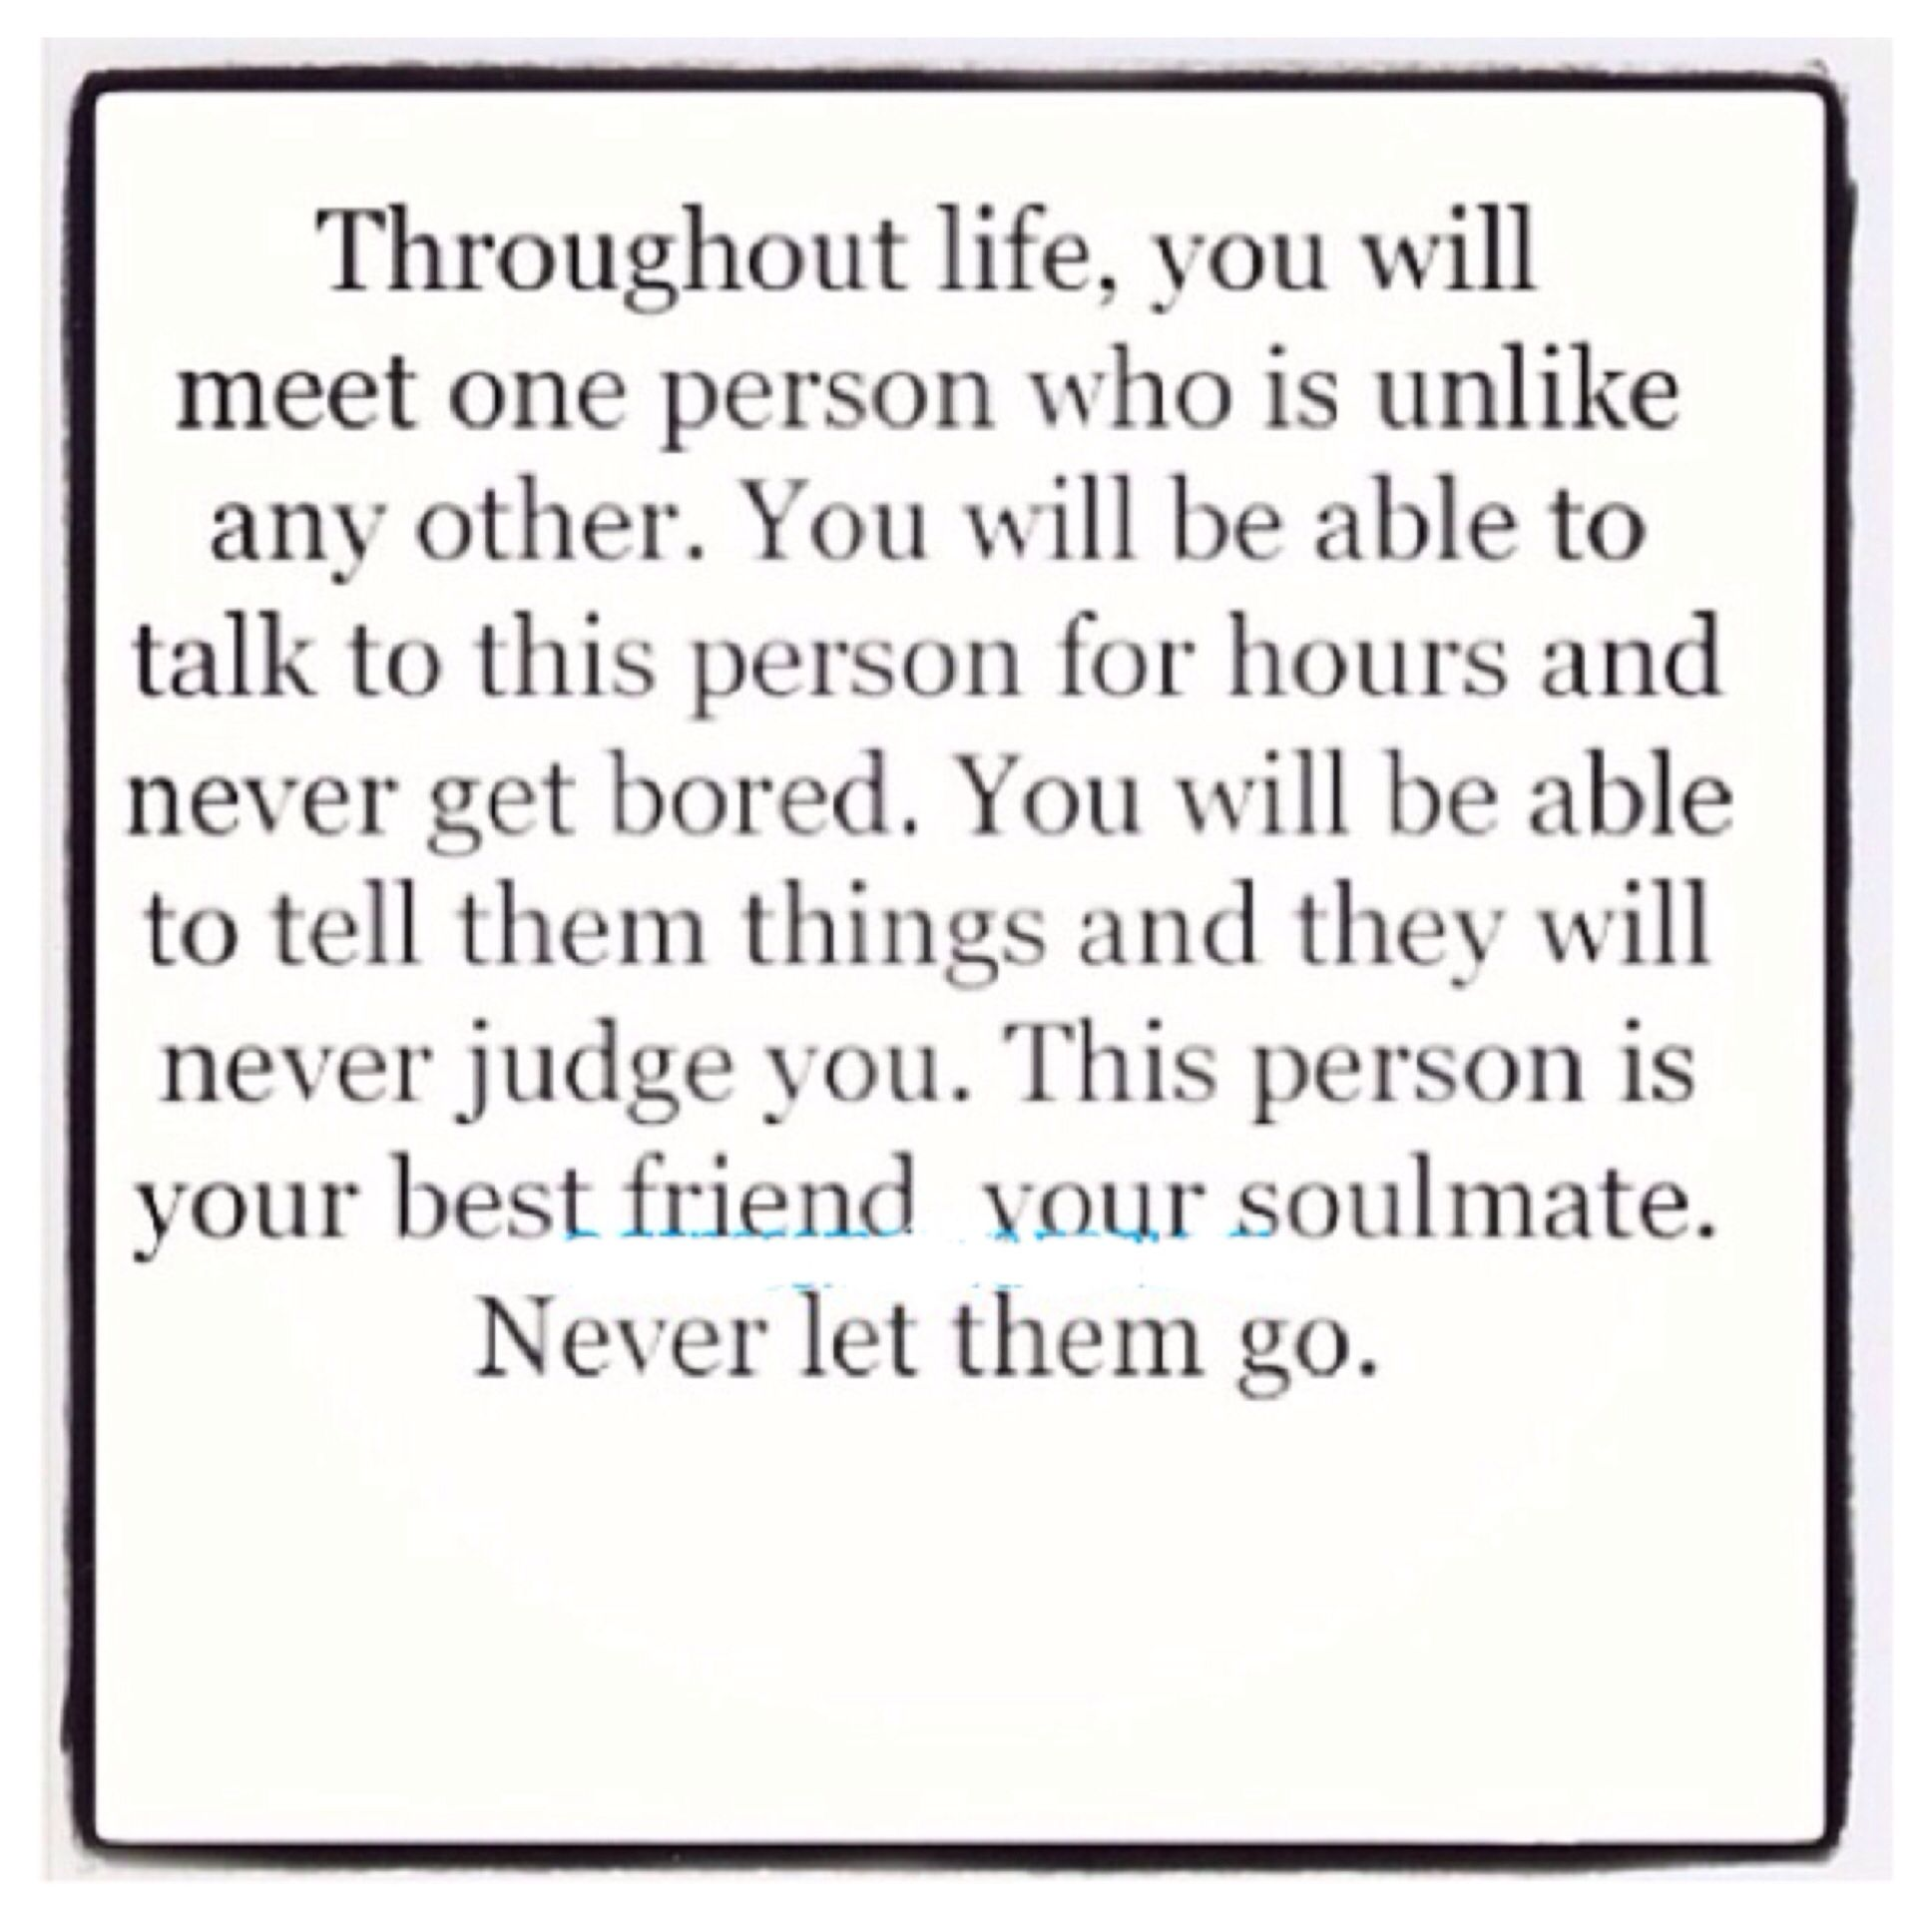 I Love My Girlfriend Quotes Best Friendsoulmate  Quotes  Pinterest  Relationships Truths